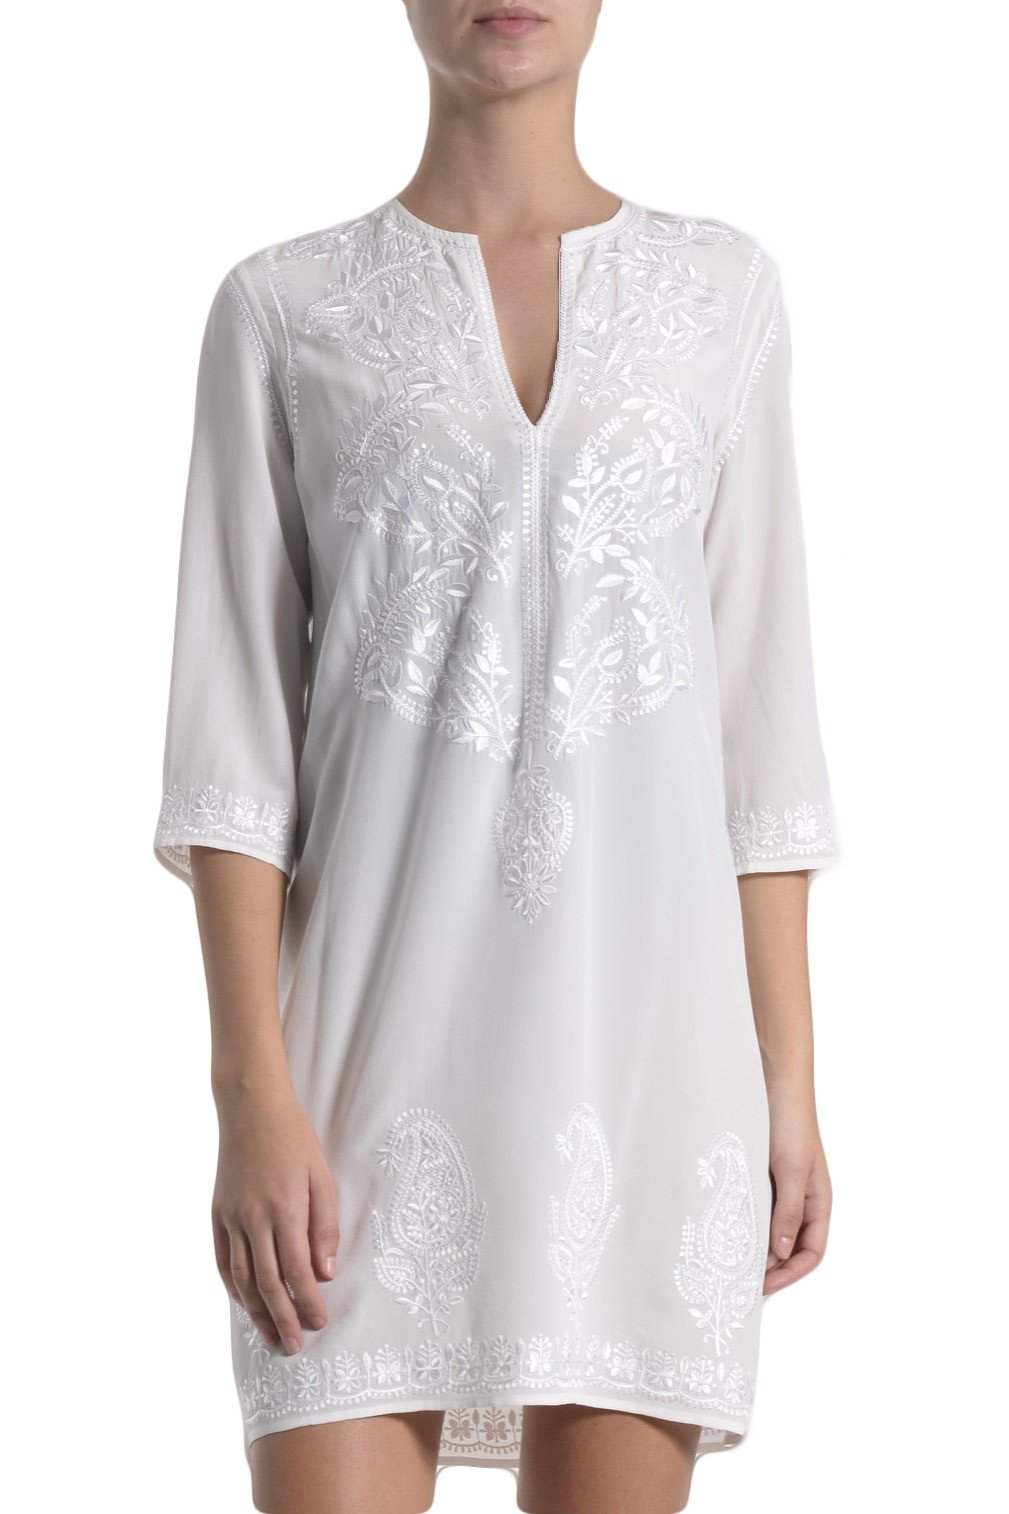 Silk Embroidered Short Crepe Dress Marie France Van Damme